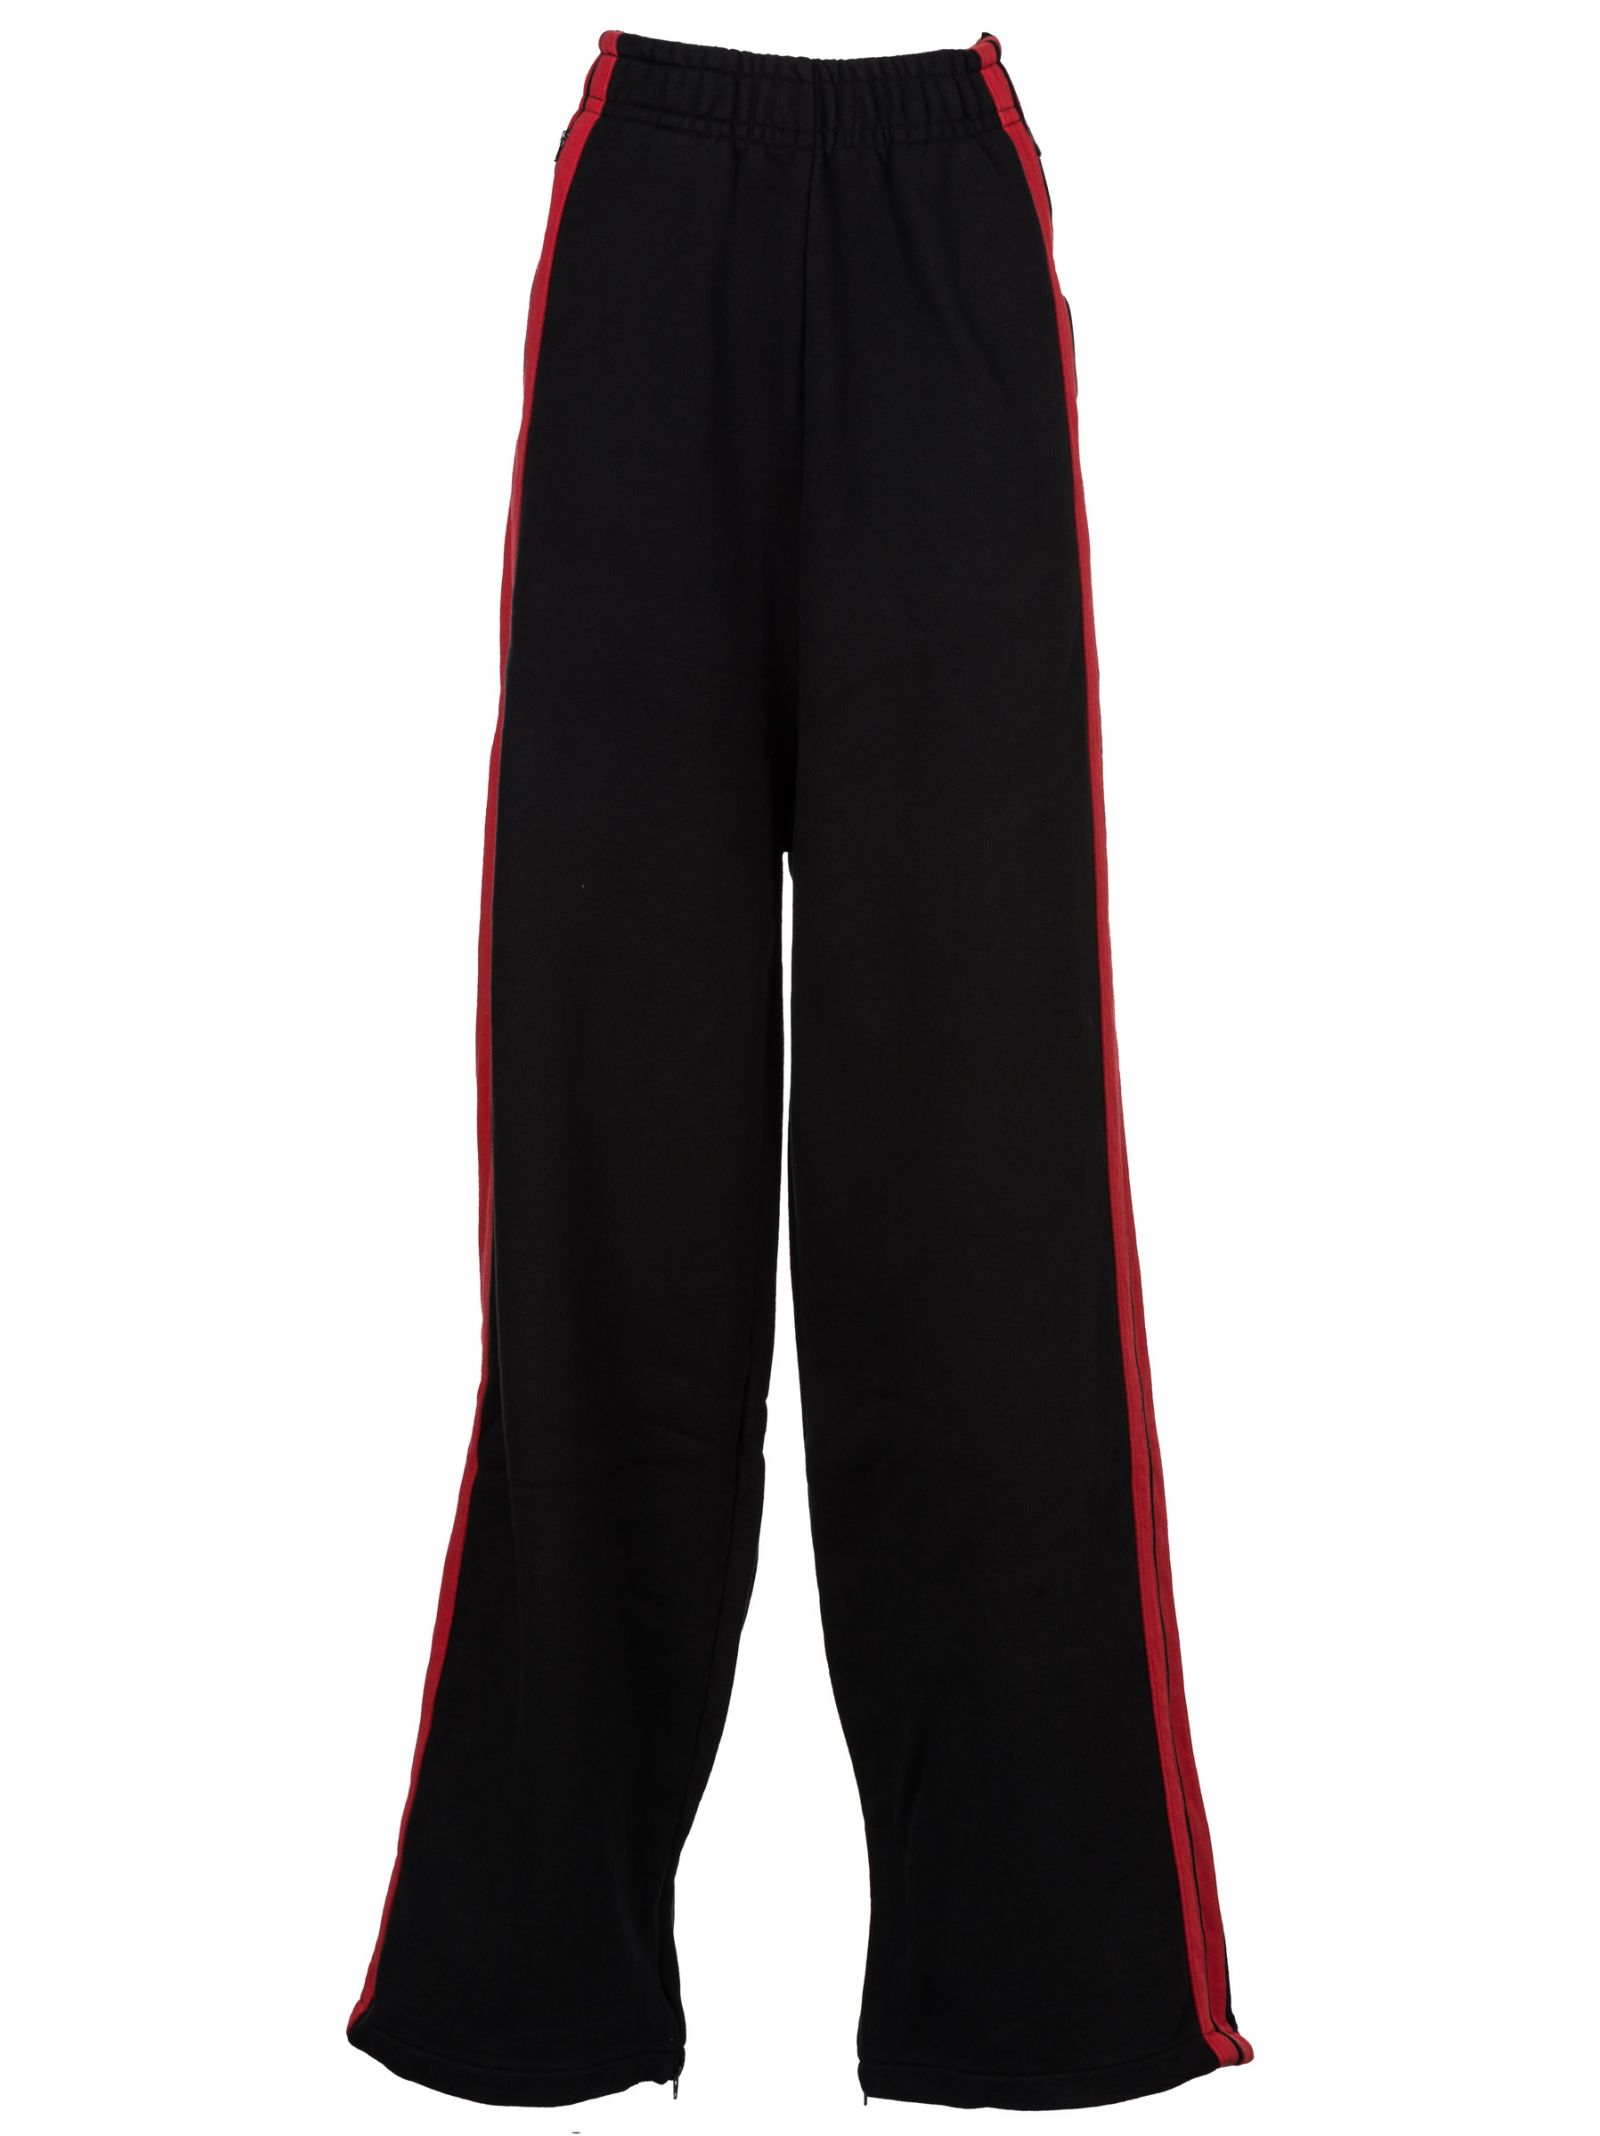 Black Oversized Lounge Pants by Vetements with elasticized waistband, jersey striping in red at side-seams and zippered vent at cuffs.